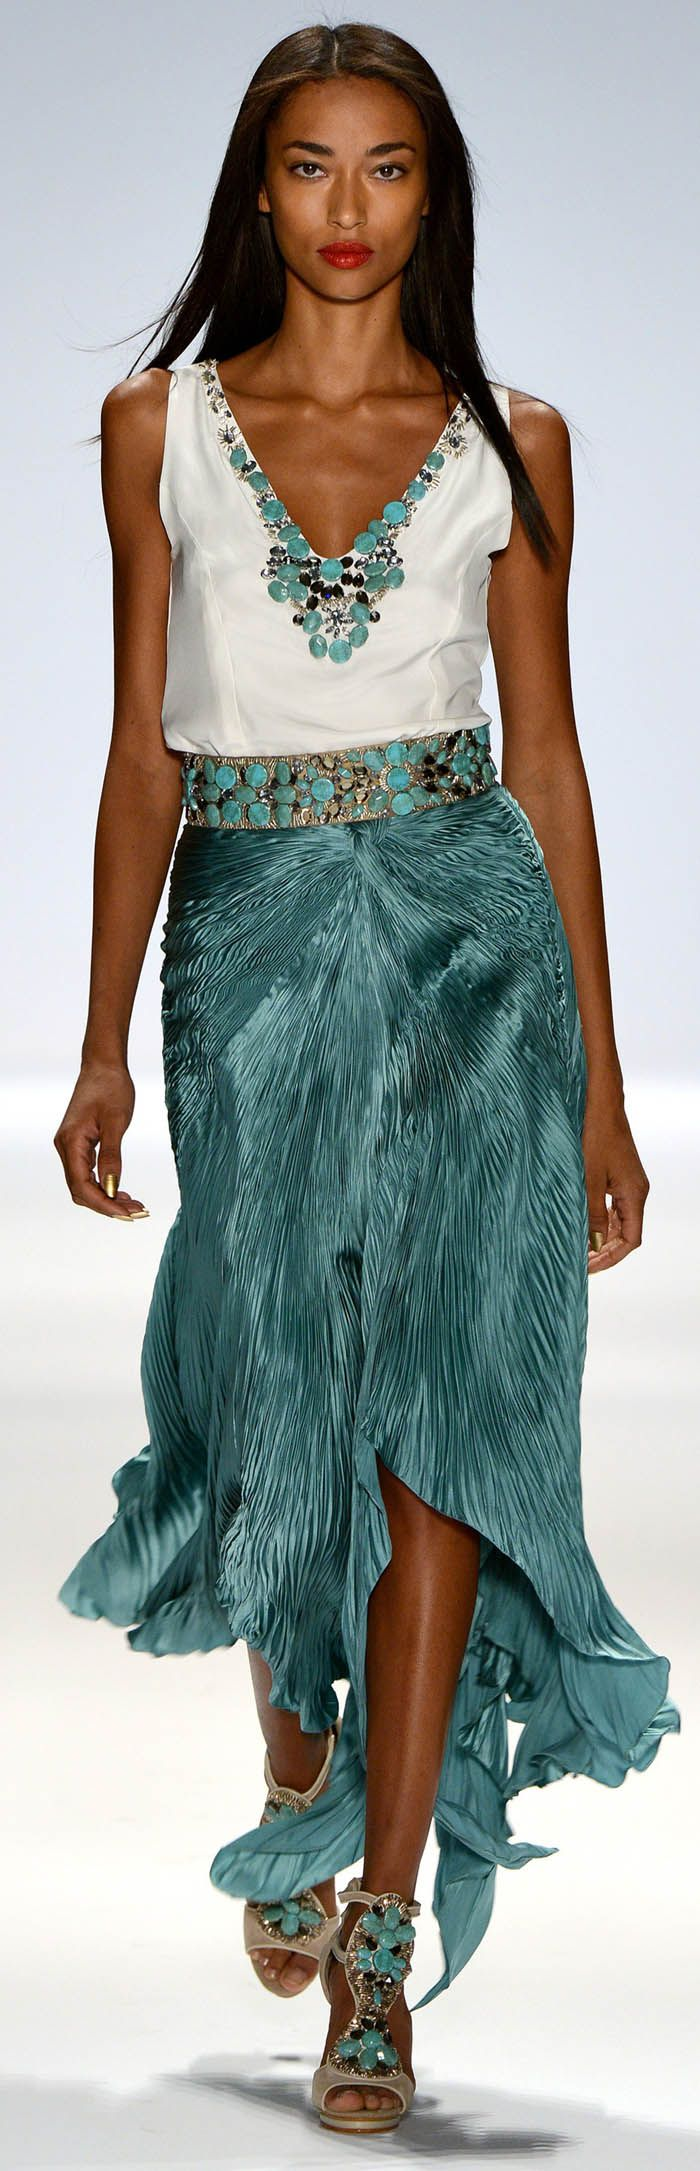 Beautiful Teal Color skirt -Carlos Miele Spring Summer 2013 Ready-To-Wear Collection -